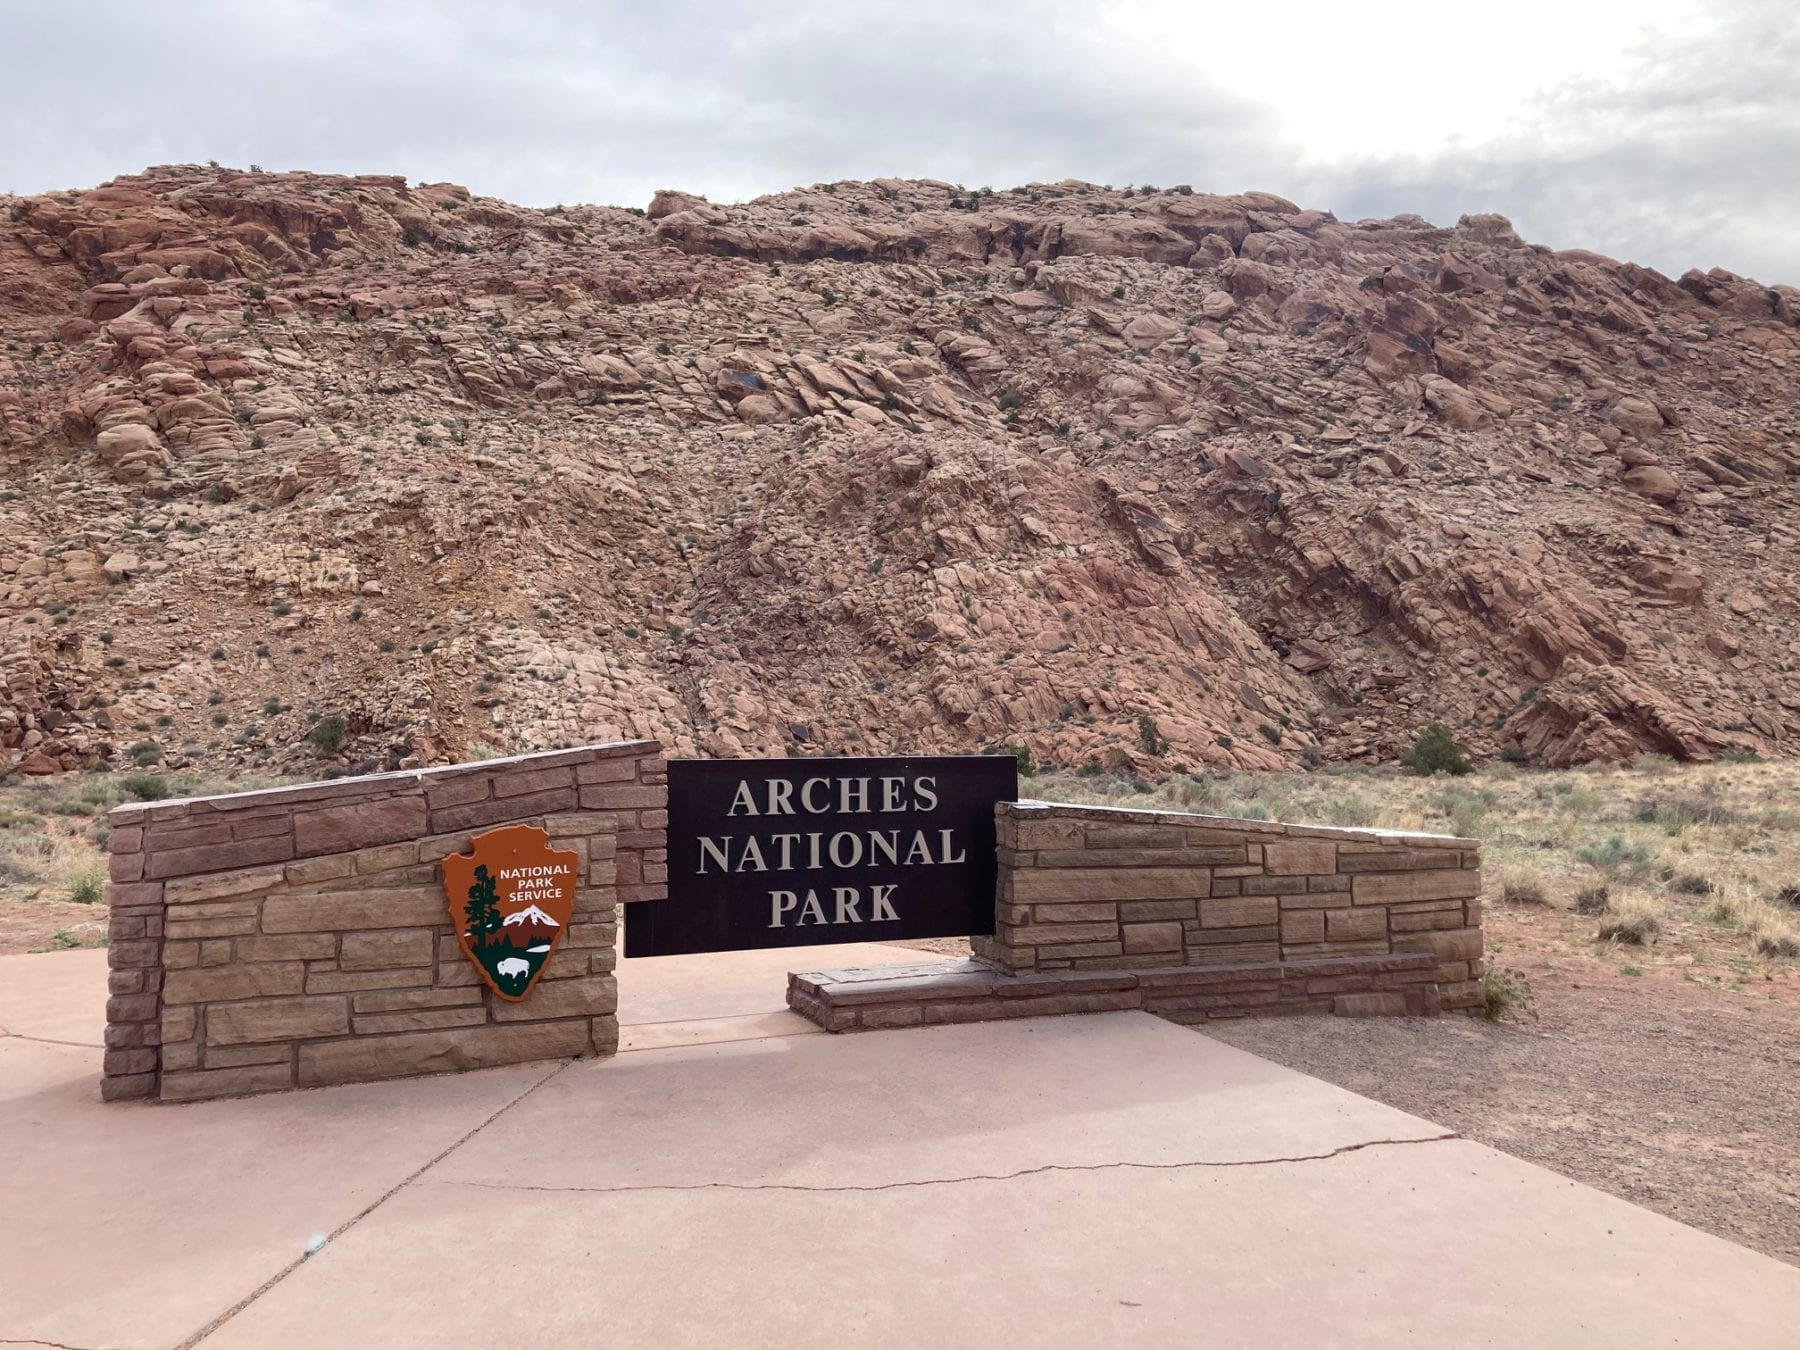 Plan a Trip to Arches National Park